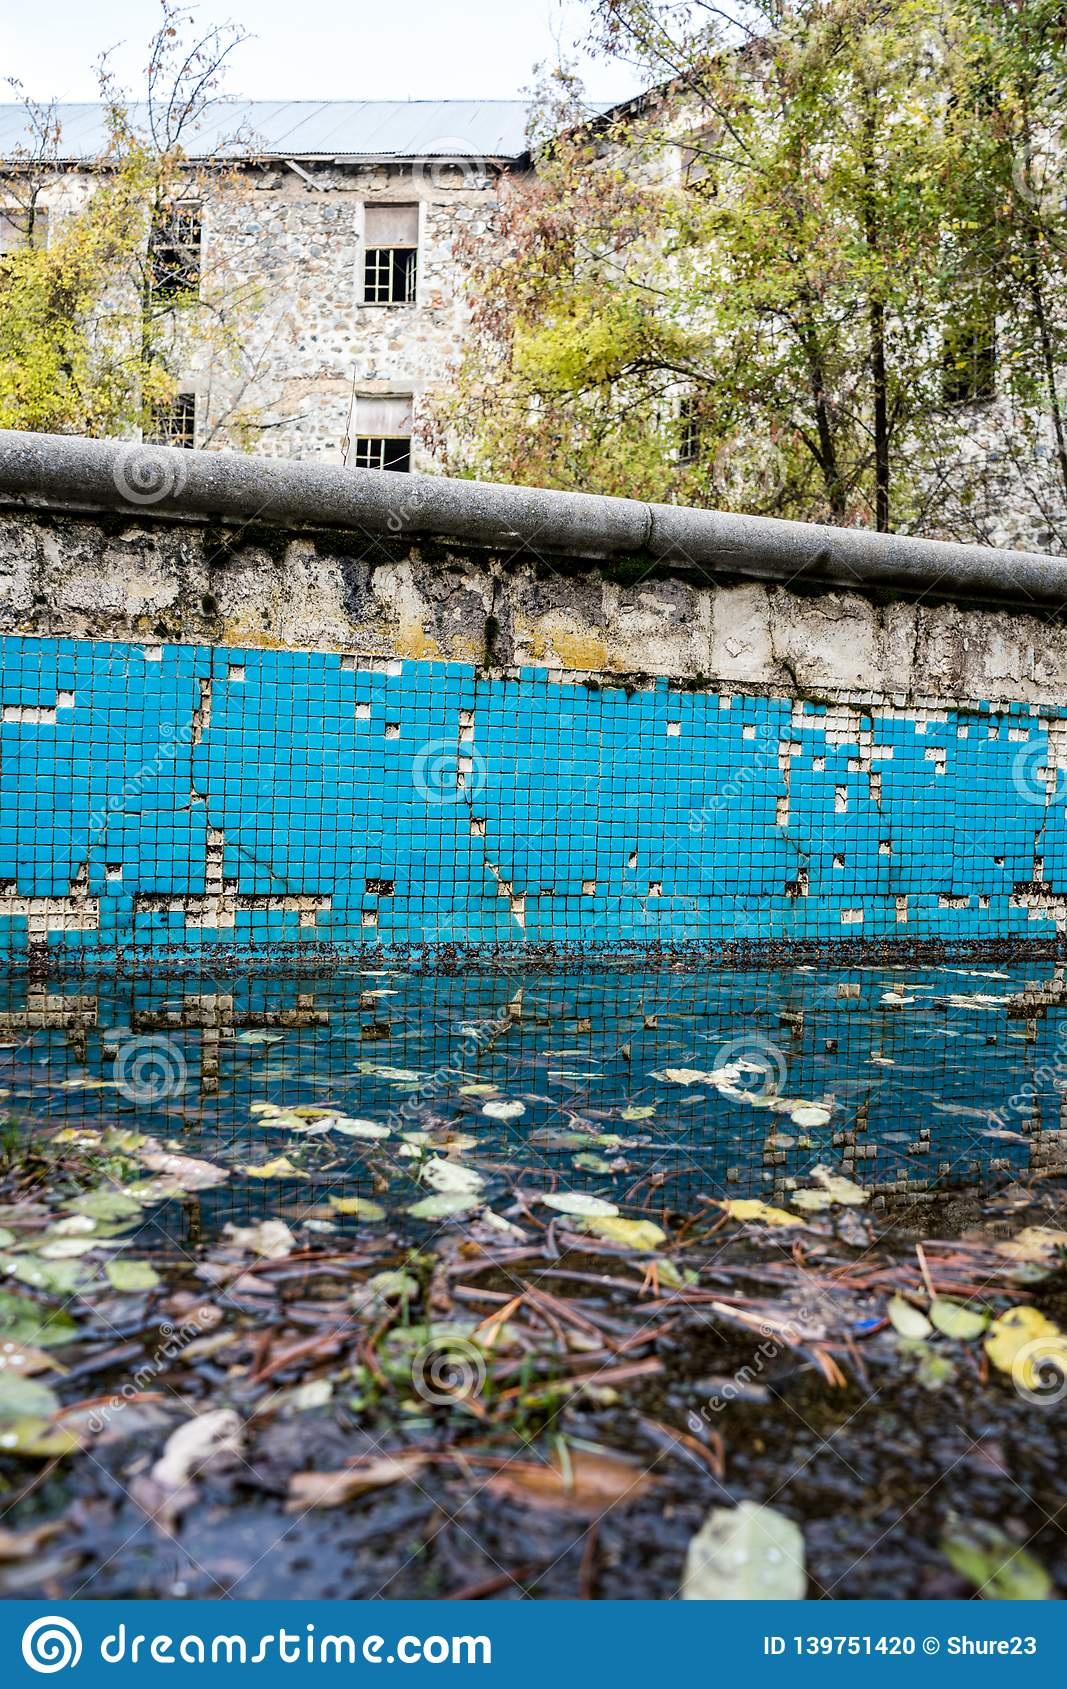 Swimming Pool Area Of Berengaria Abandoned Hotel In Mountain Region Of Trodos Cyprus Stock Photo Image Of Building Exterior 139751420